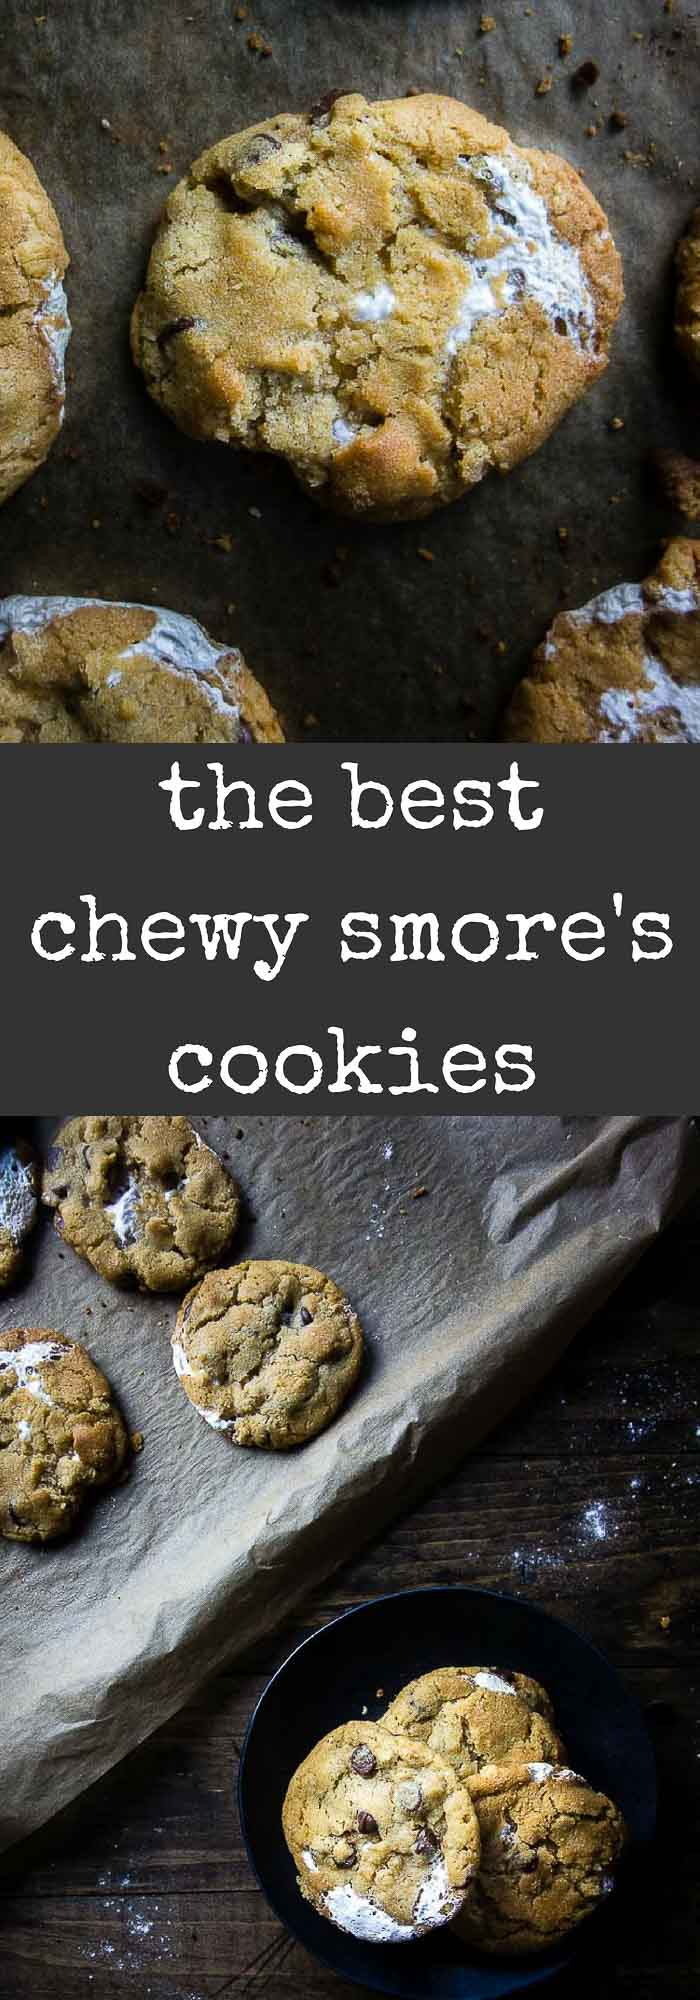 These Chewy S'mores Cookies are made with graham crackers and chocolate chips, then stuffed with marshmallow fluff for the best chewy cookies ever! The boyfriend's all time favorite cookies!!S'mores | marshmallow cookies | easy S'mores cookies | graham cracker cookies | easy cookies | chewy smores cookies | smores chocolate chip cookies | smores stuffed cookies